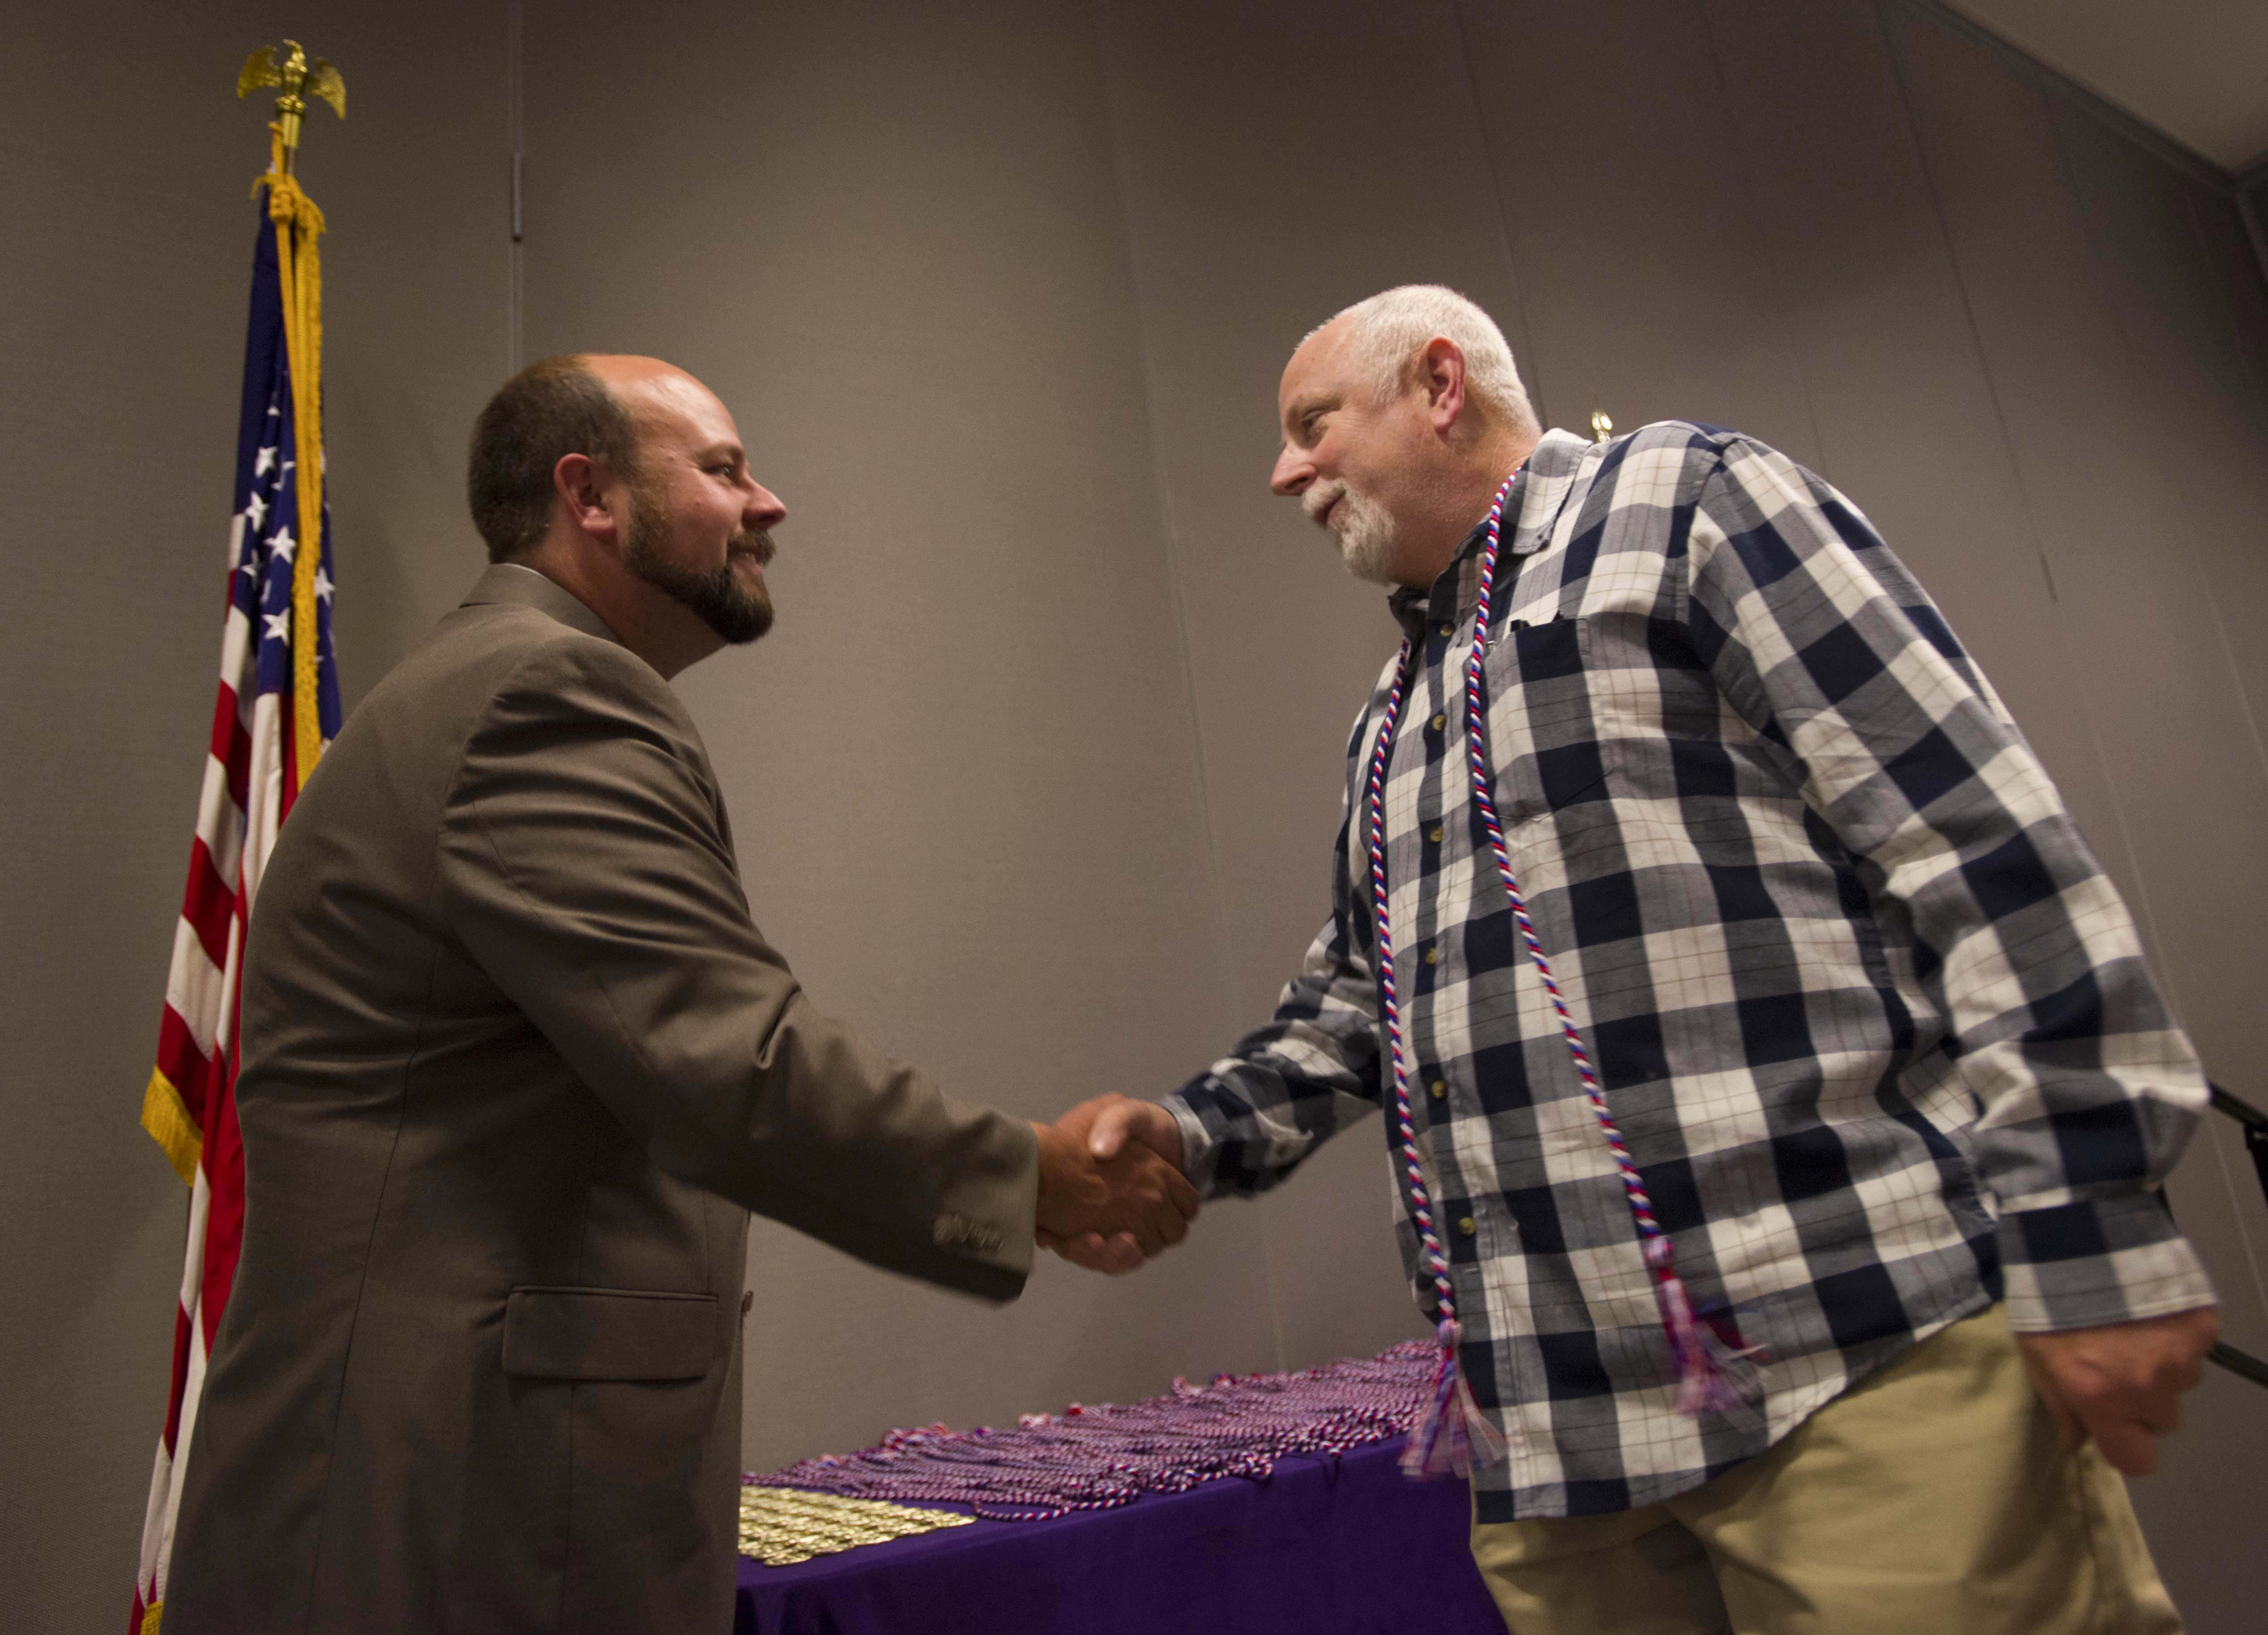 Vets get honor cords